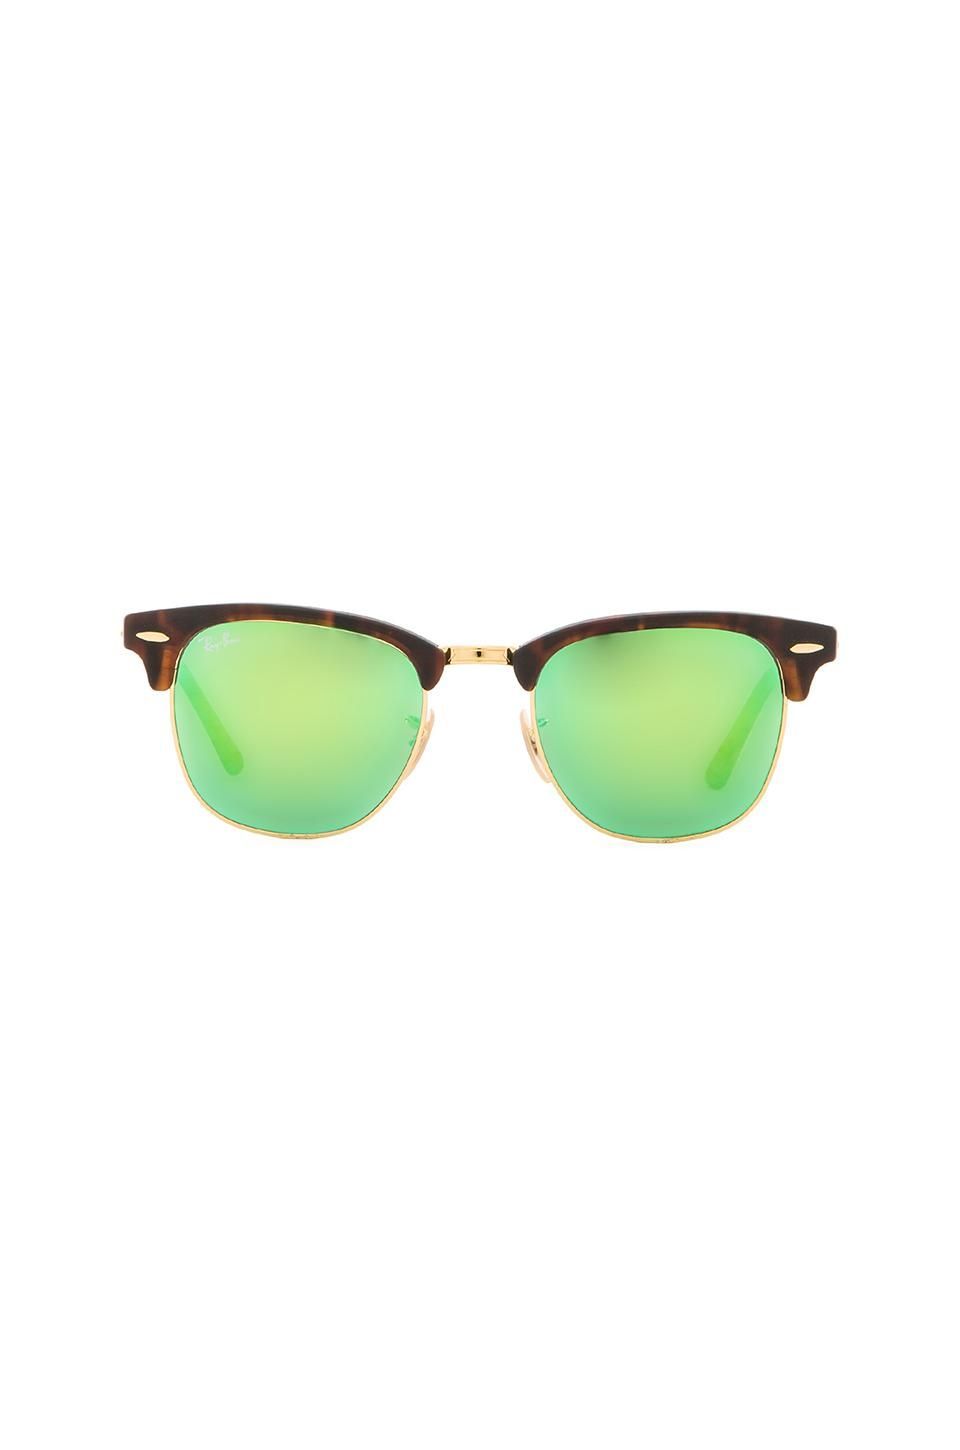 ec7a4e98d057e Ray-Ban Clubmaster Flash Lenses in Tortoise   Green Flash   LOOKS WE ...